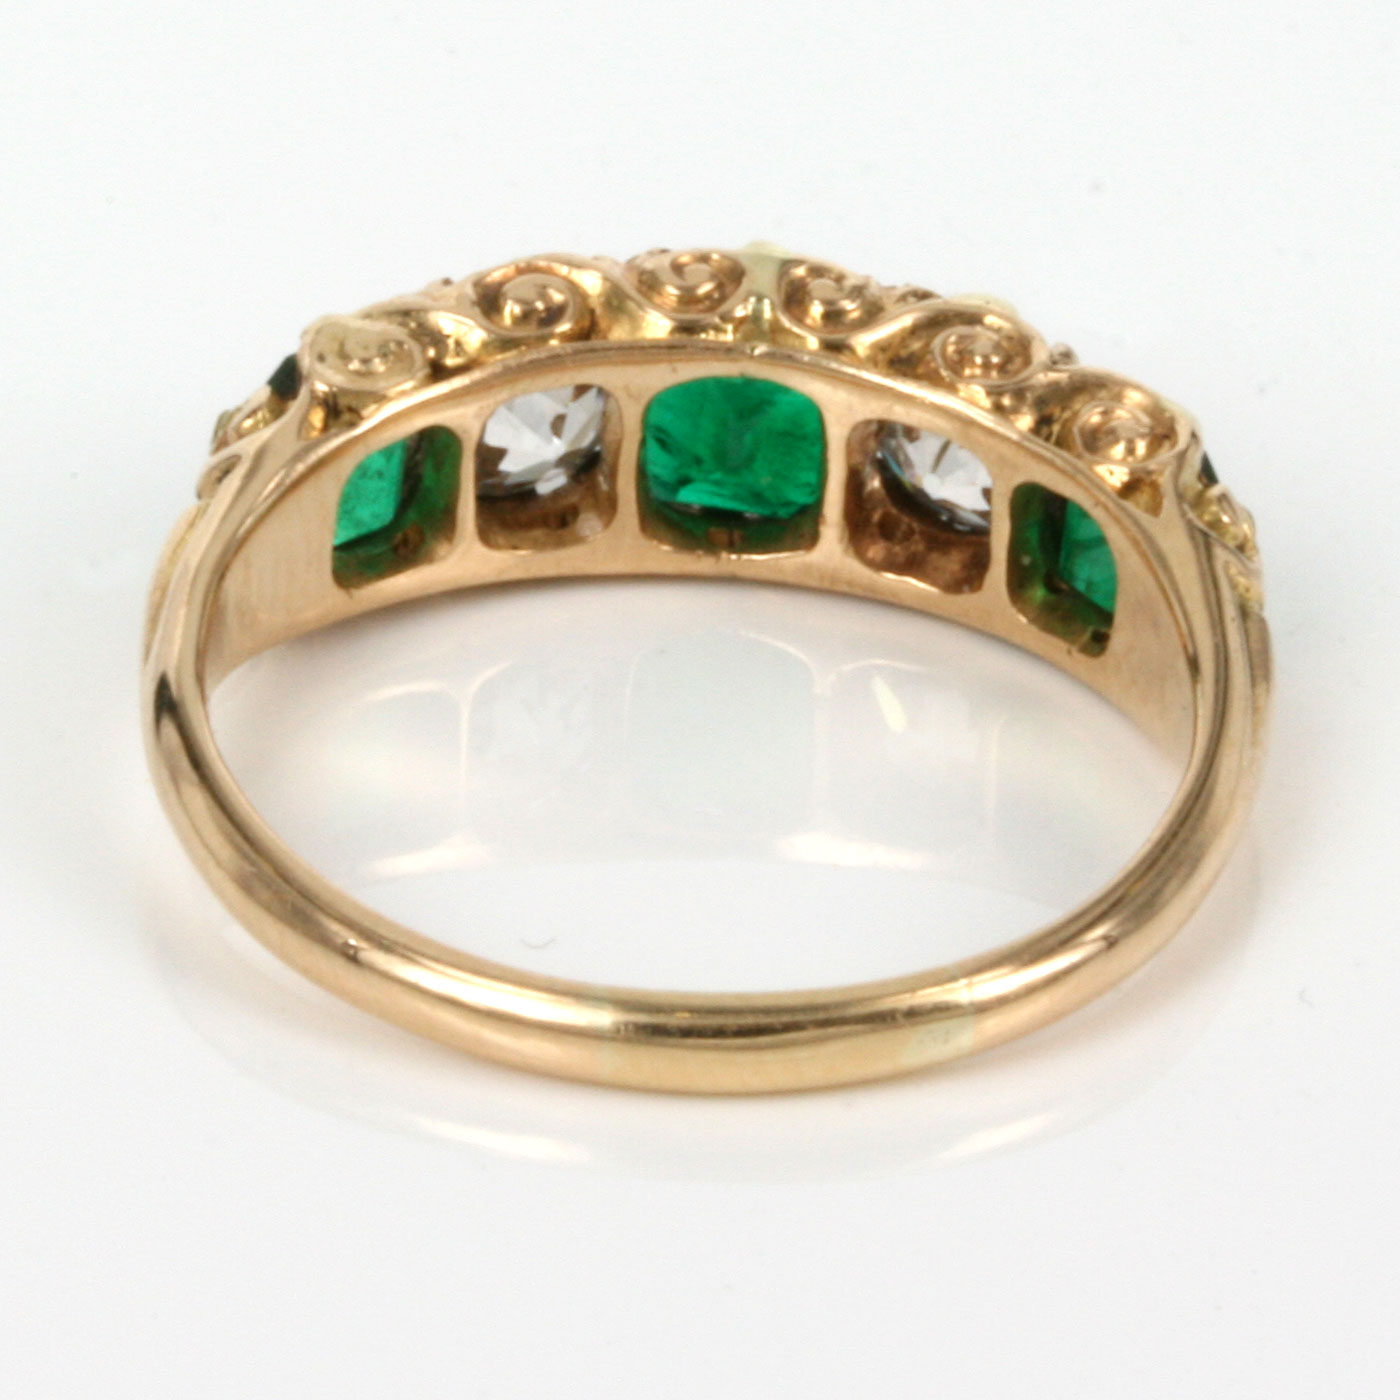 buy 18ct antique emerald and ring sold items sold